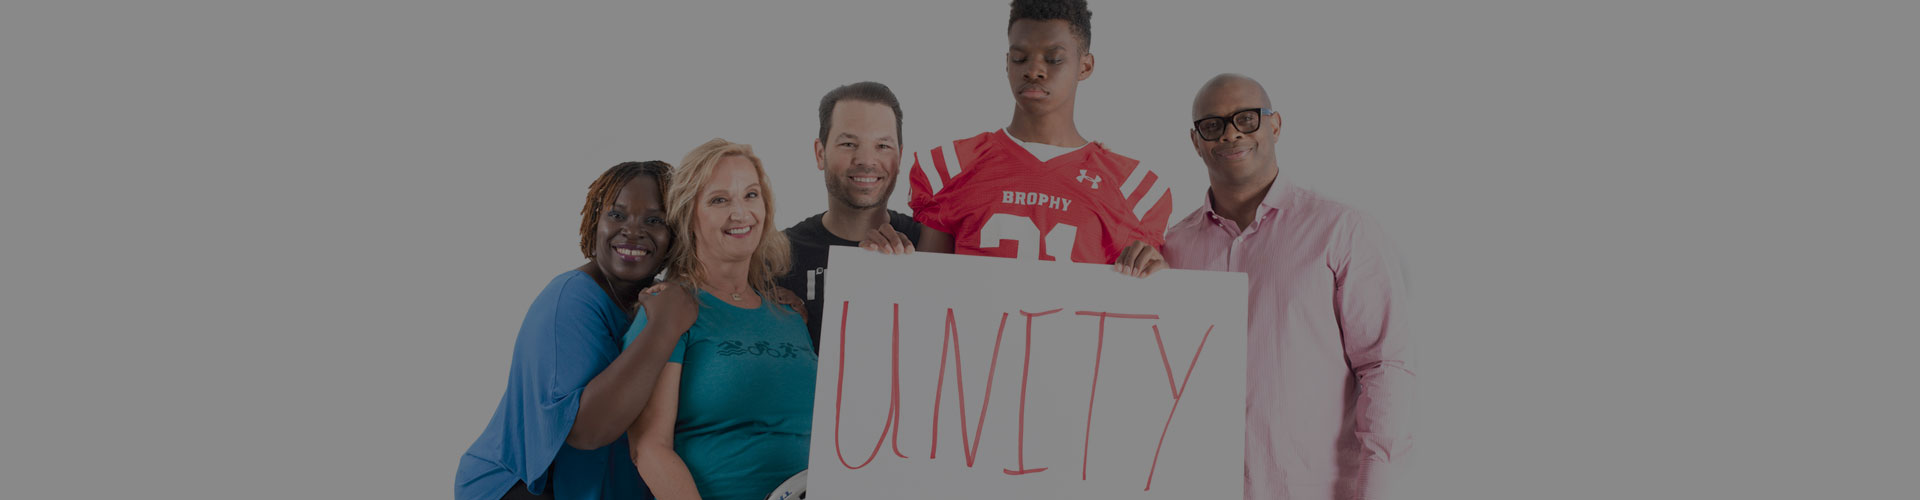 Diversity Leadership Alliance Team - Unity Sign